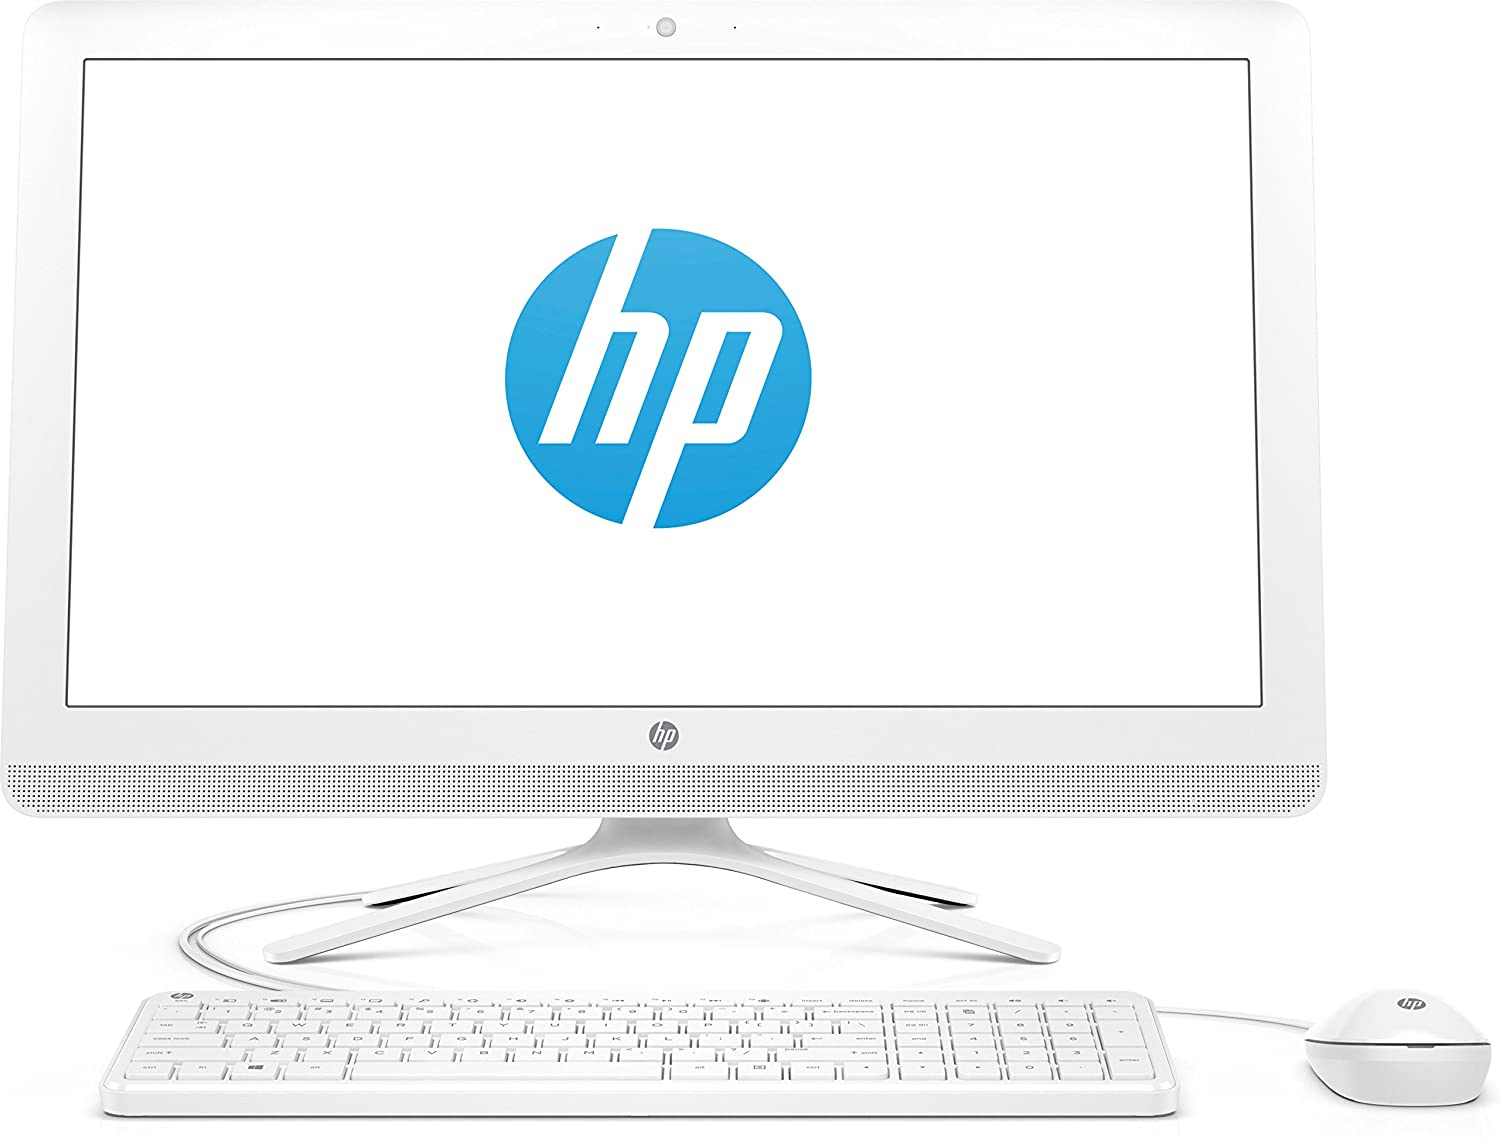 HP 60,45 cm All-in-One Desktop PC weiß: Amazon.de: Computer & Zubehör